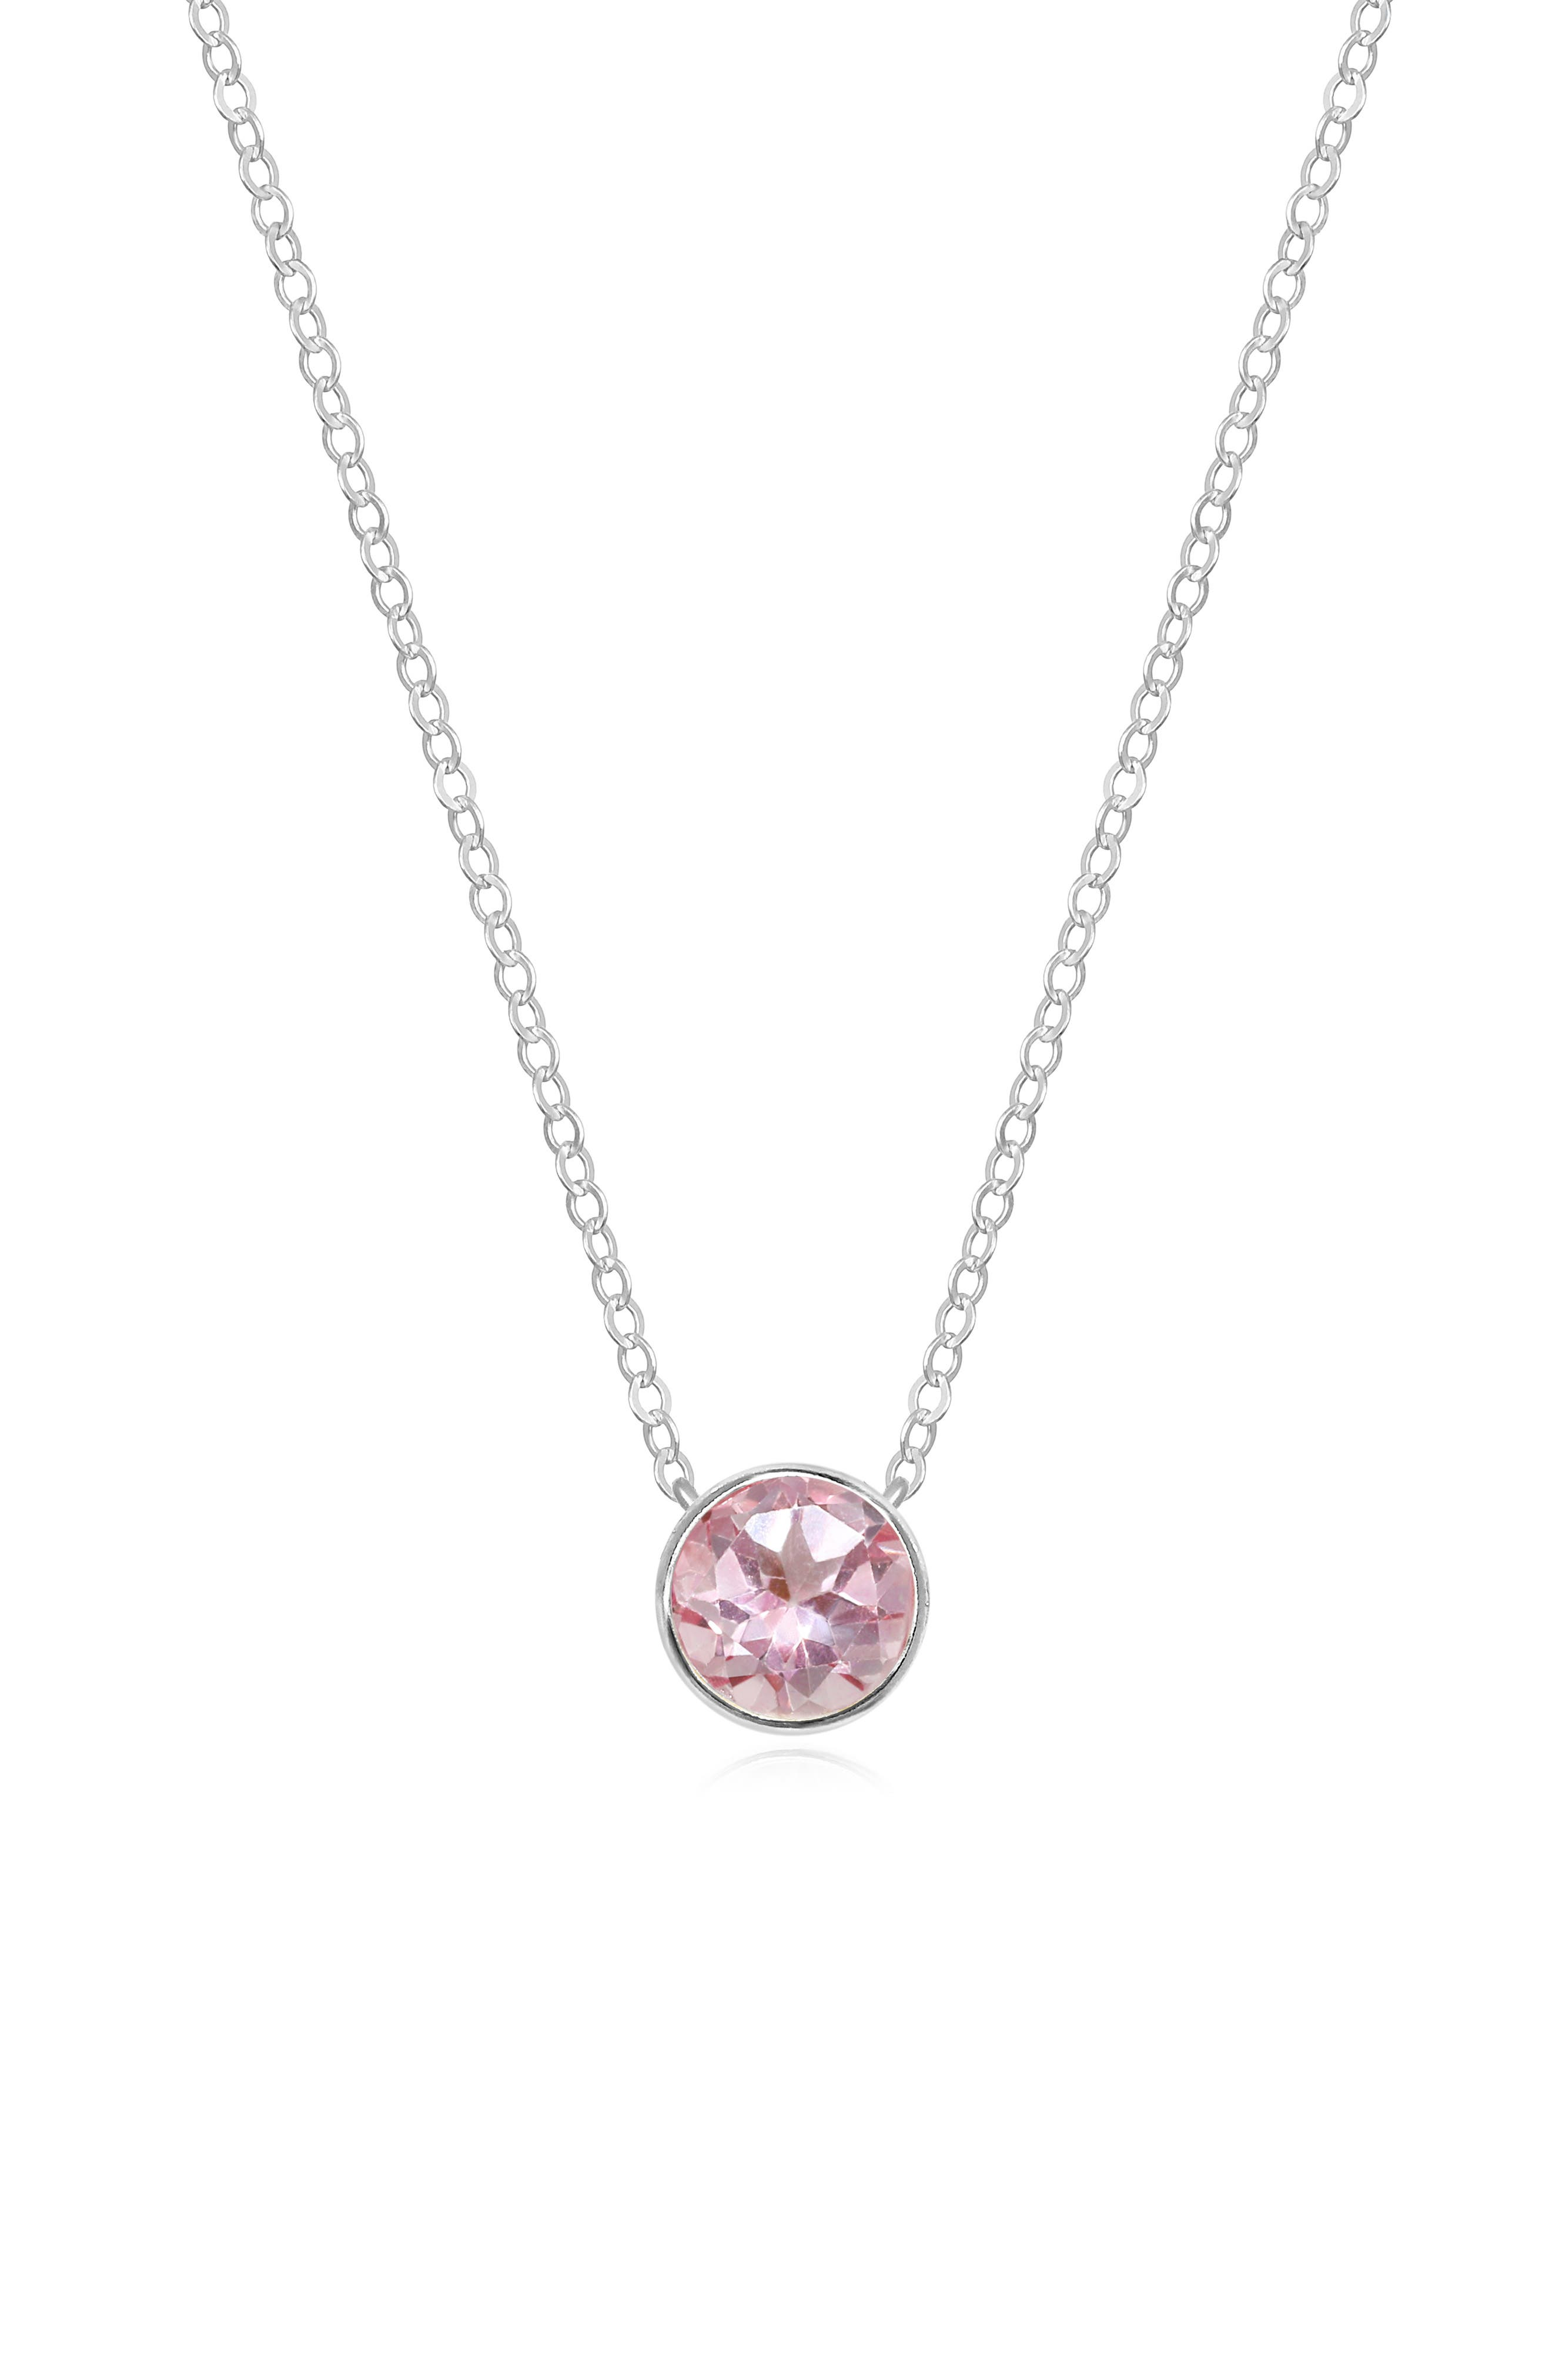 Birthstone Solitaire Pendant Necklace